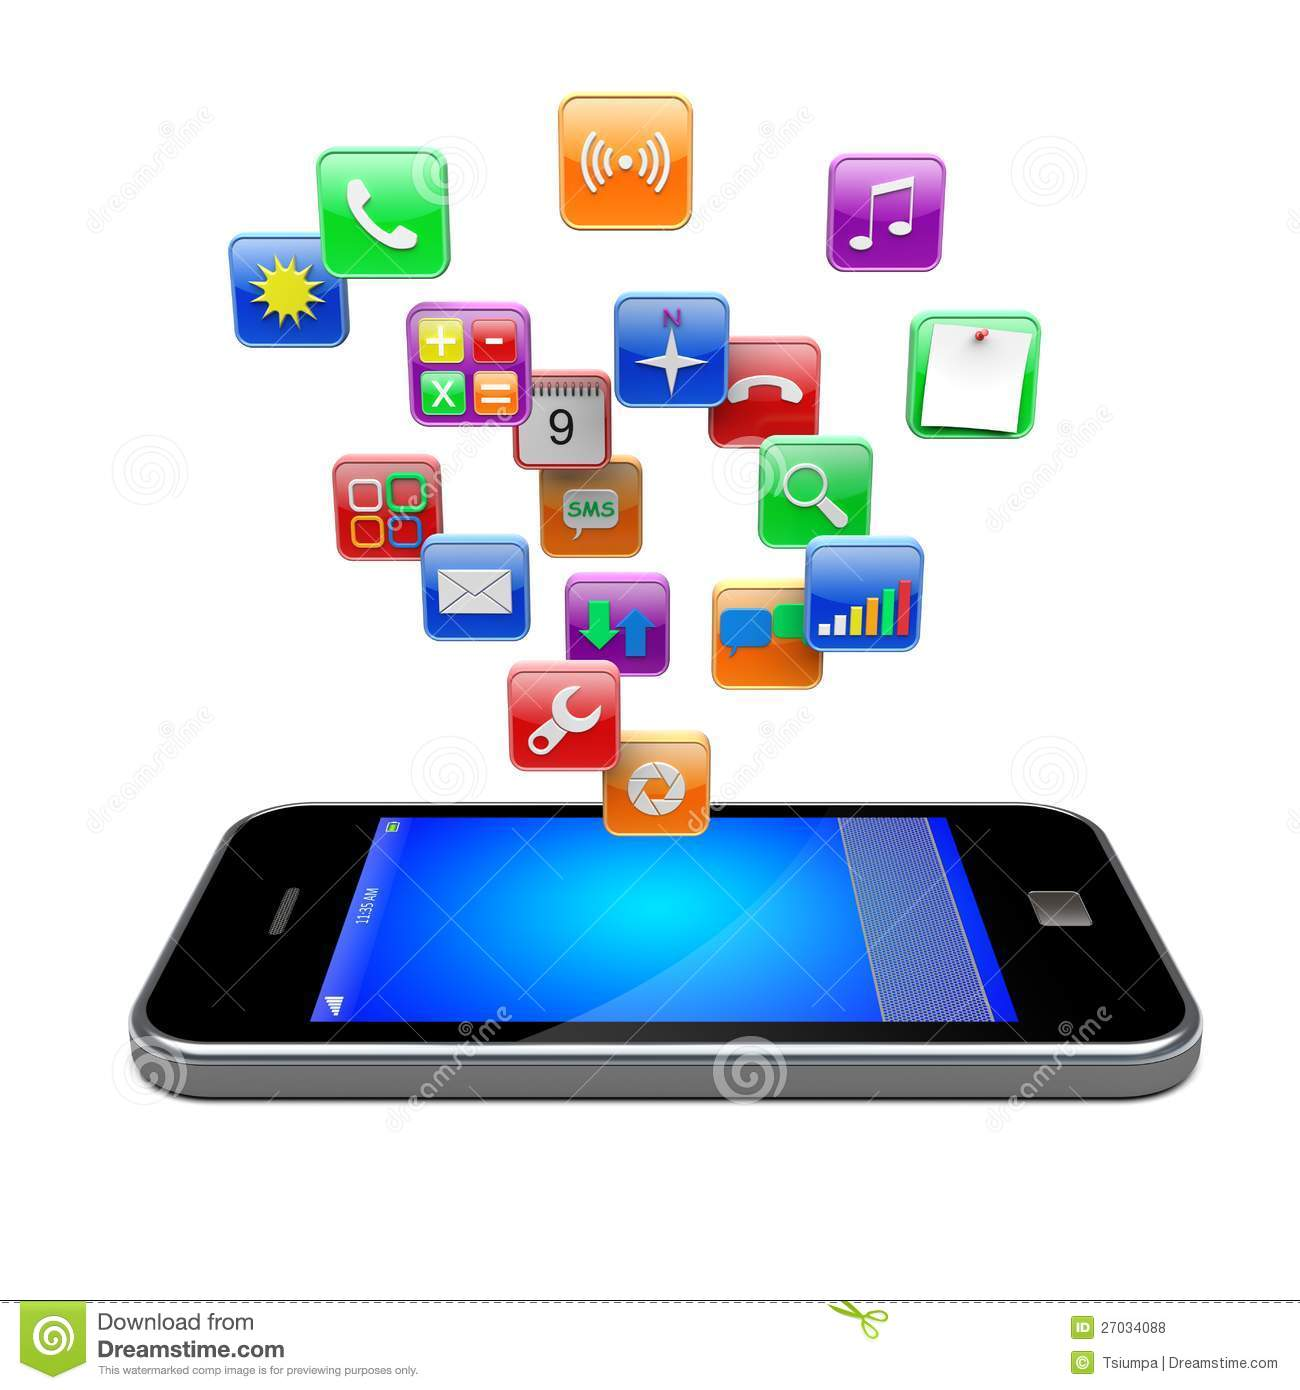 Clipart apps free download » Clipart Station.